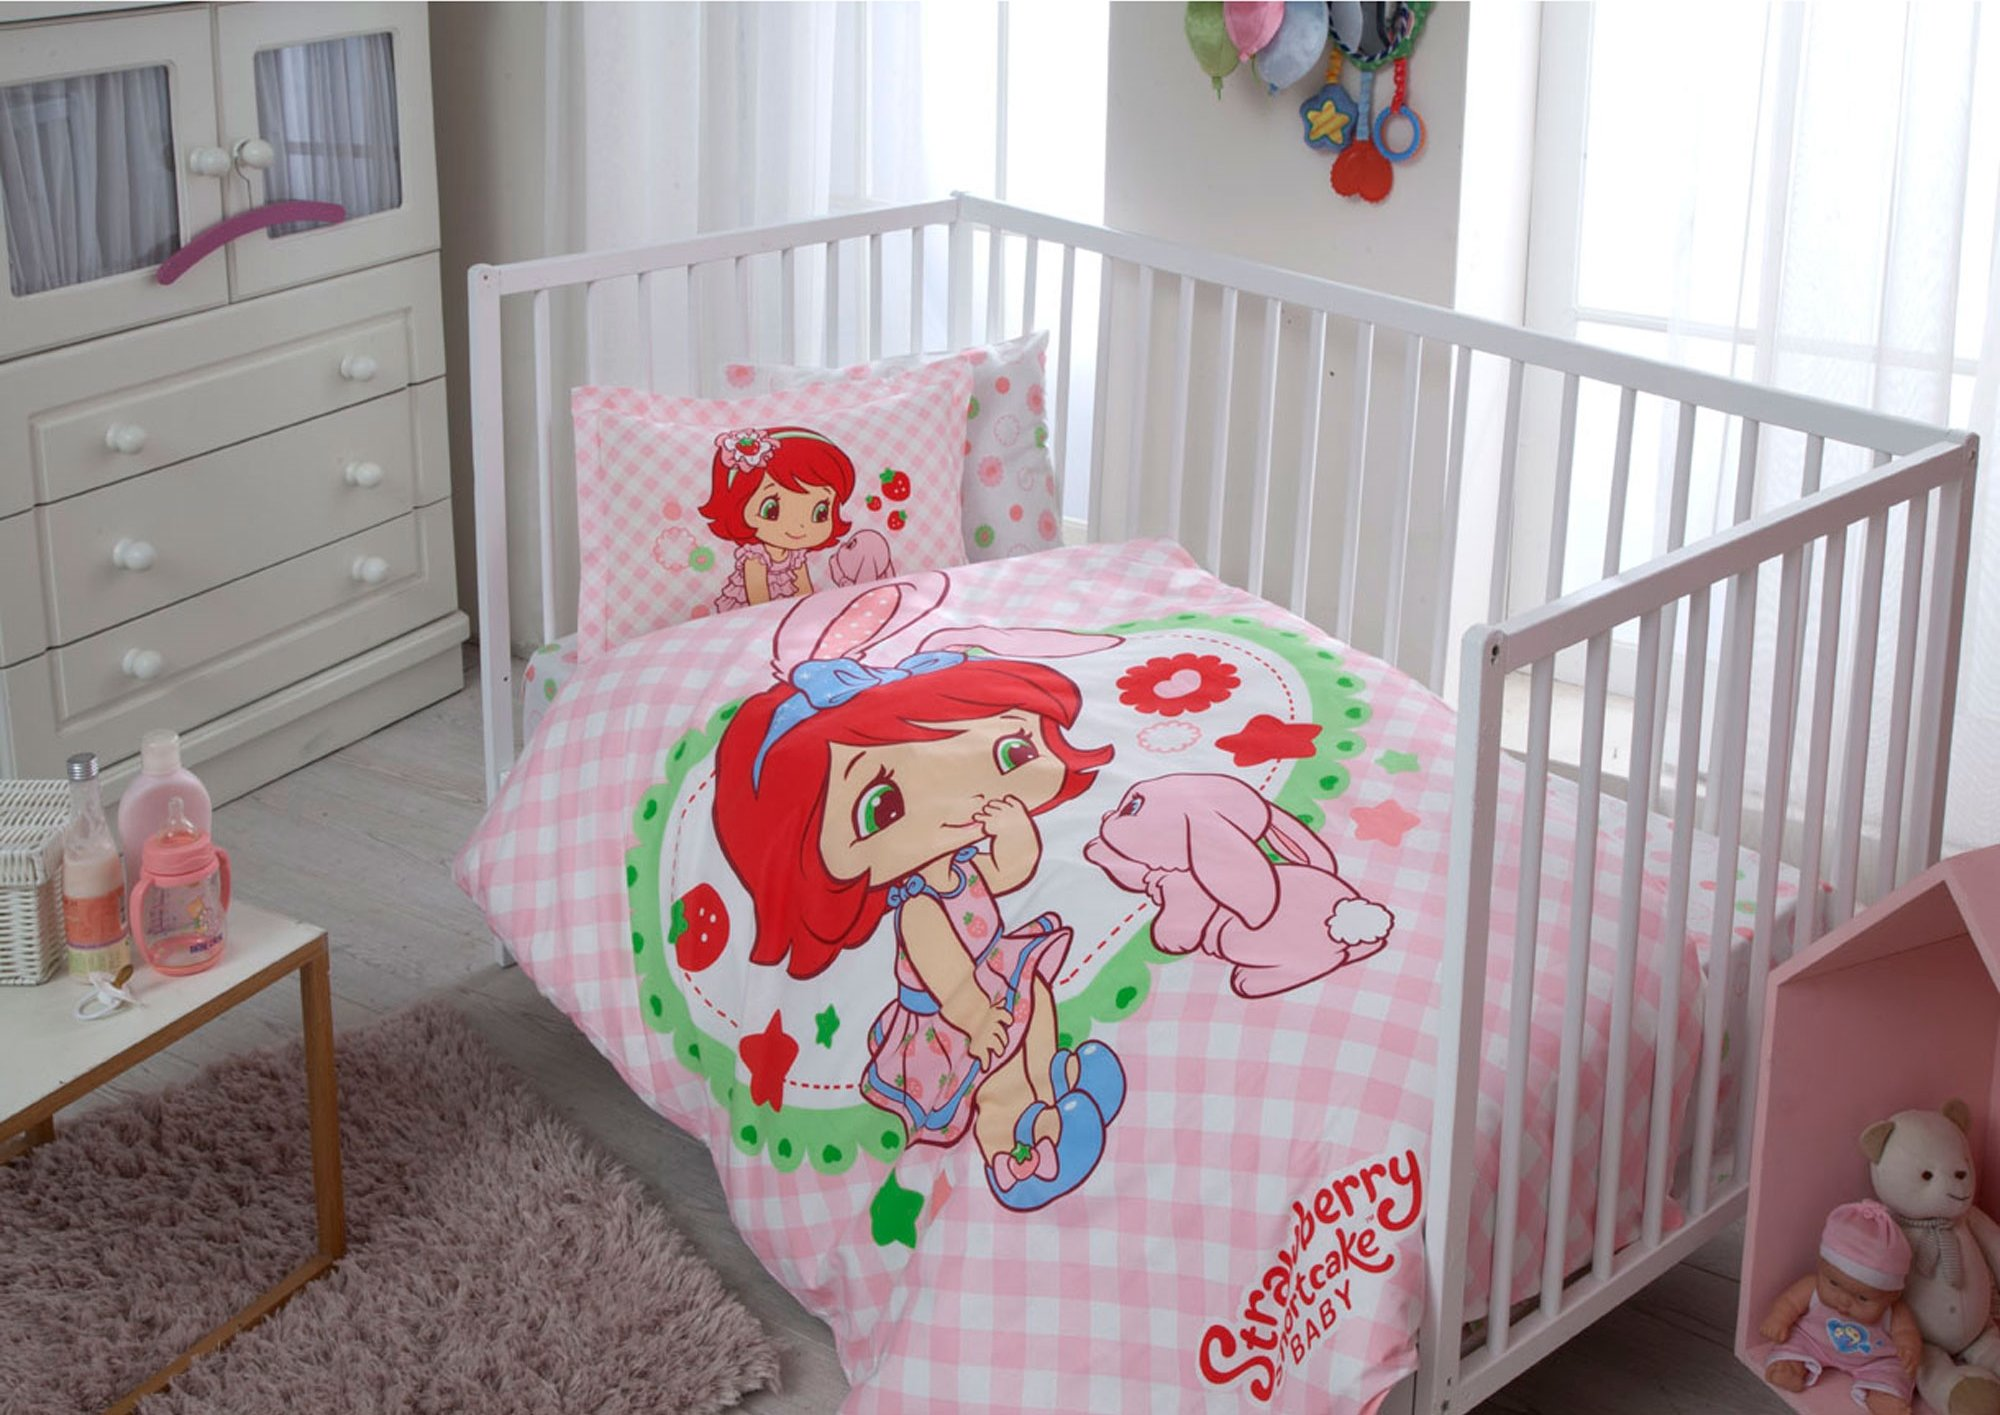 100% Organic Cotton Soft and Healthy Baby Crib Bed Duvet Cover Set 4 Pieces, Strawberry Shortcake Bunny Baby Bedding Set